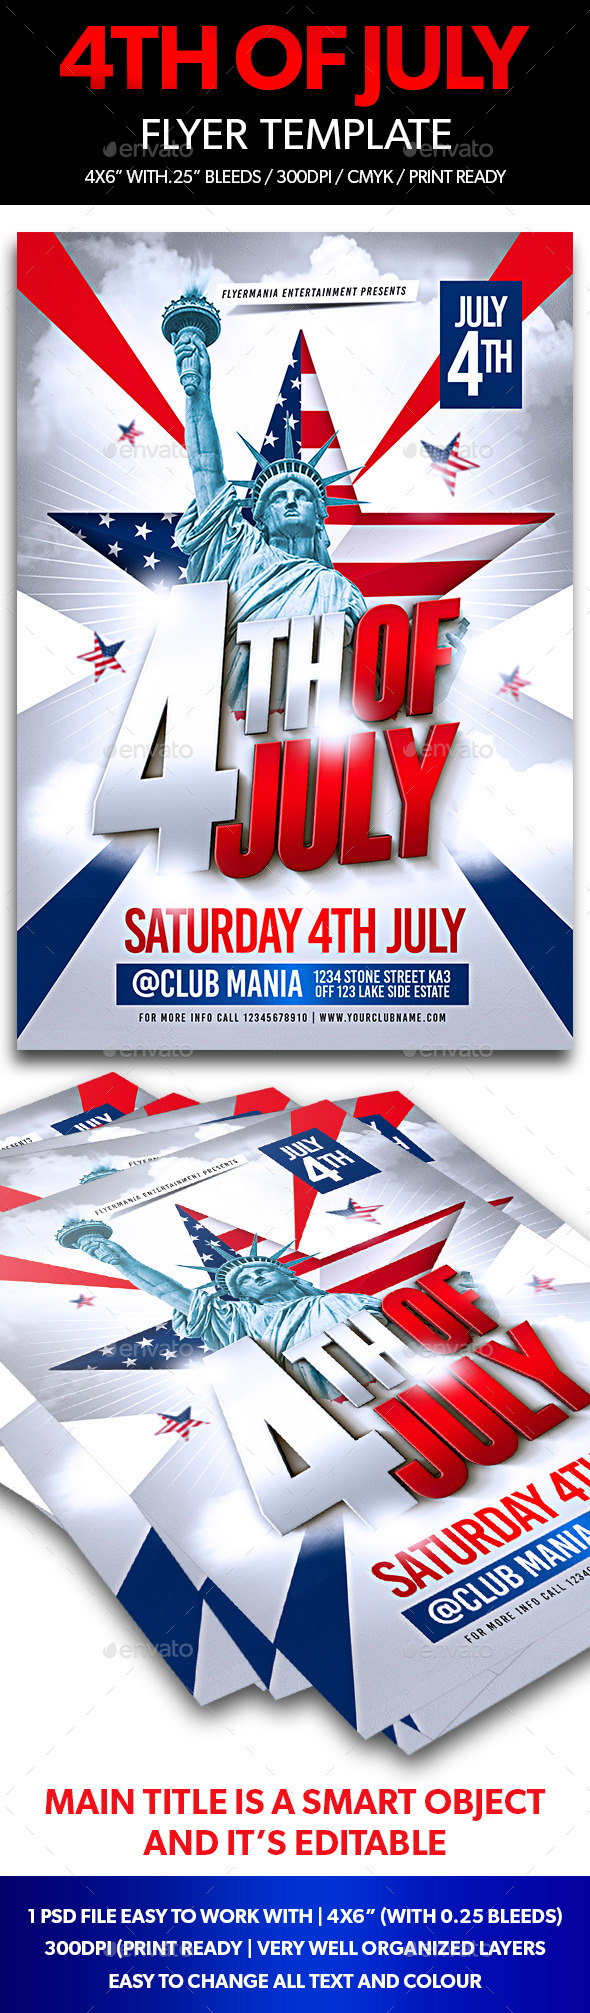 GraphicRiver 4th of July Flyer Template 11789178